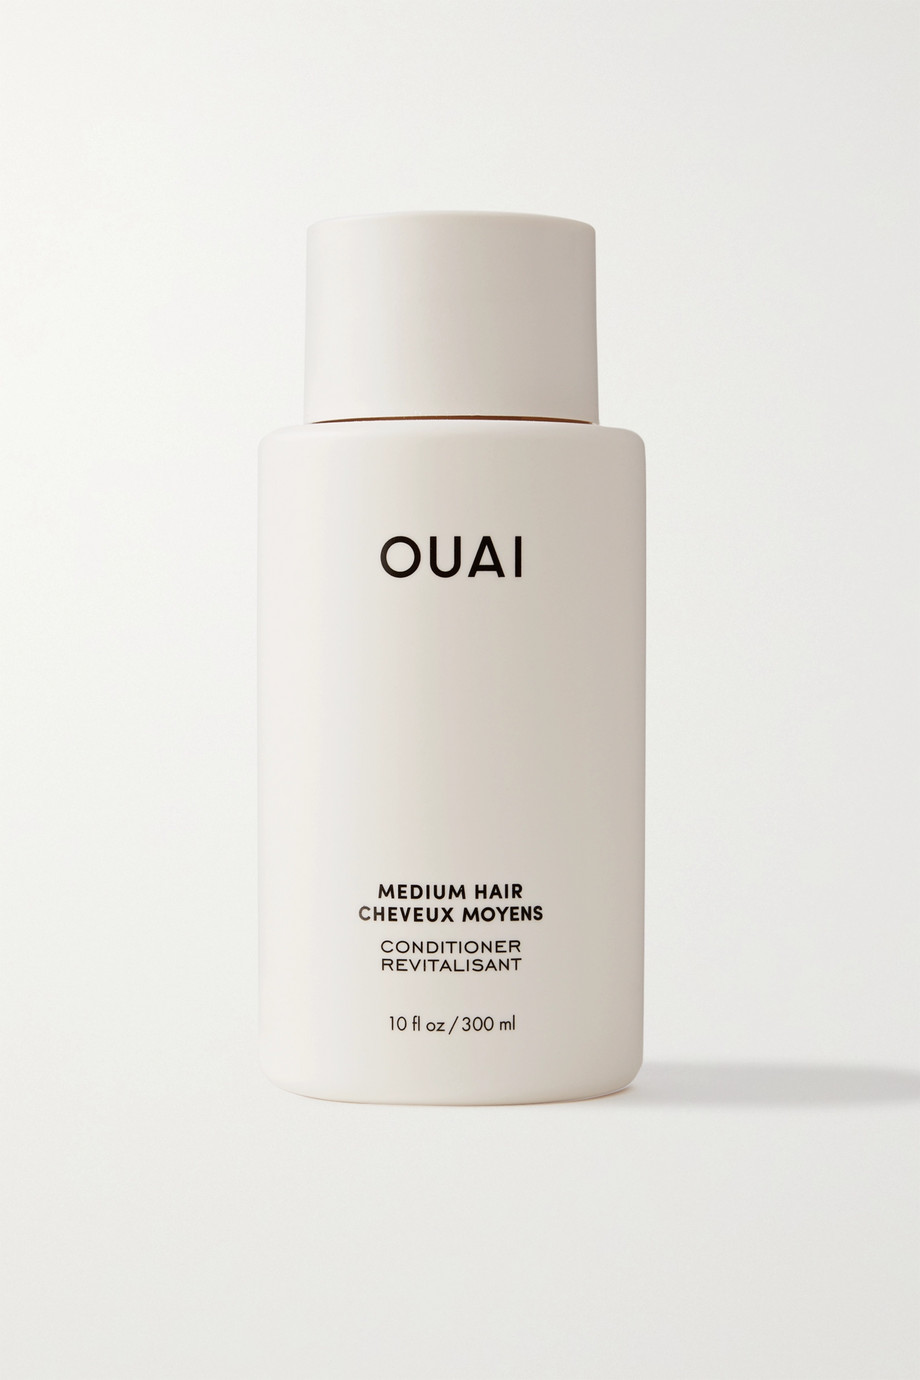 OUAI HAIRCARE Medium Hair Conditioner, 300ml